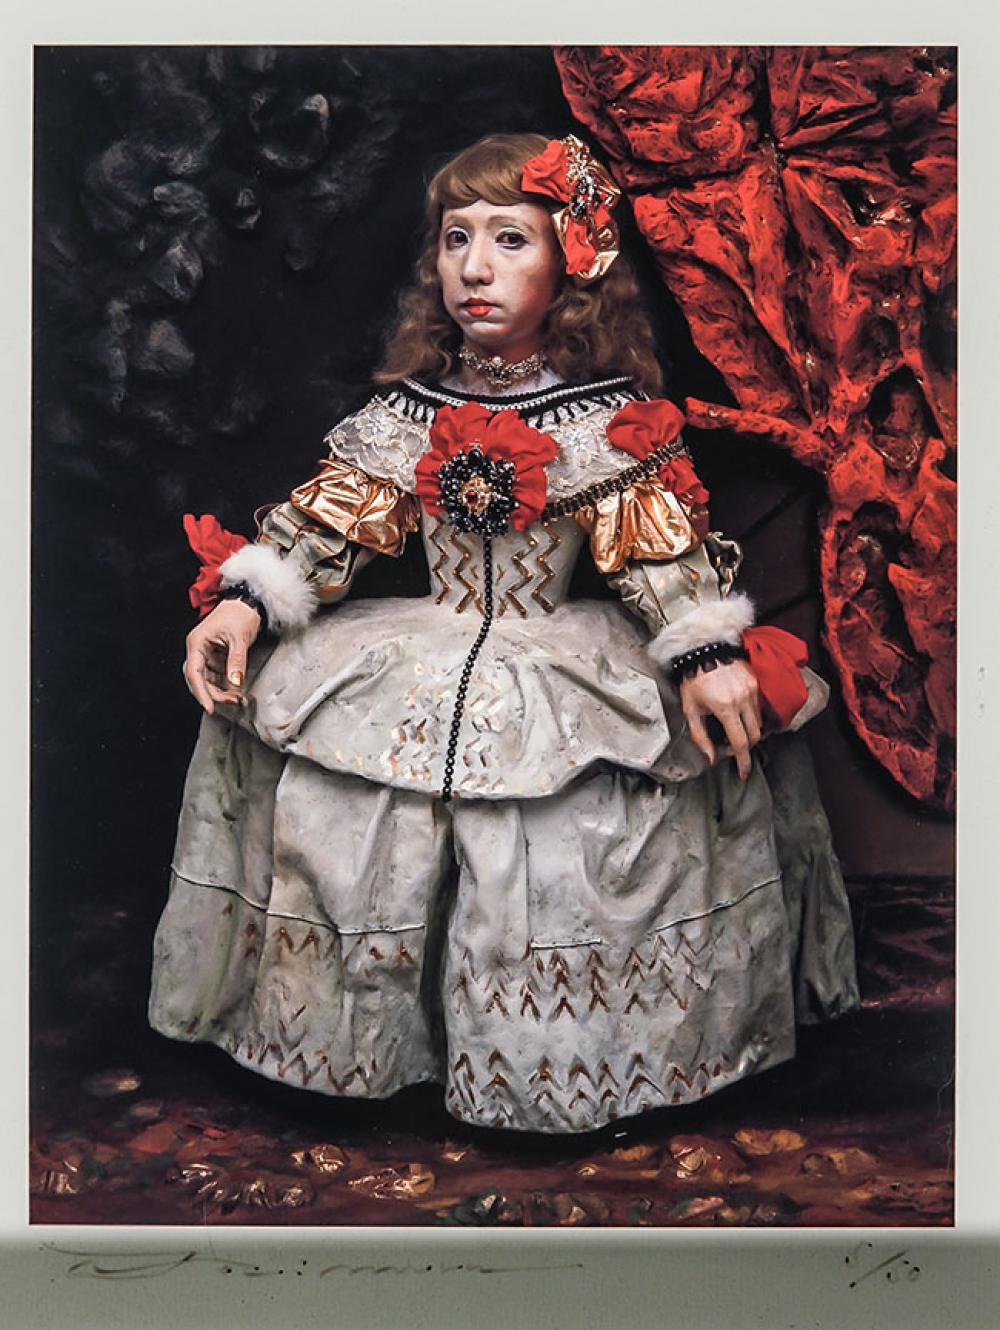 Yasumasa Morimura (Japanese b. 1951), Daughter of Art History: Princess A, Signed, Framed C-Print, 9 x 7 inches, Frame: 19 x 16 in